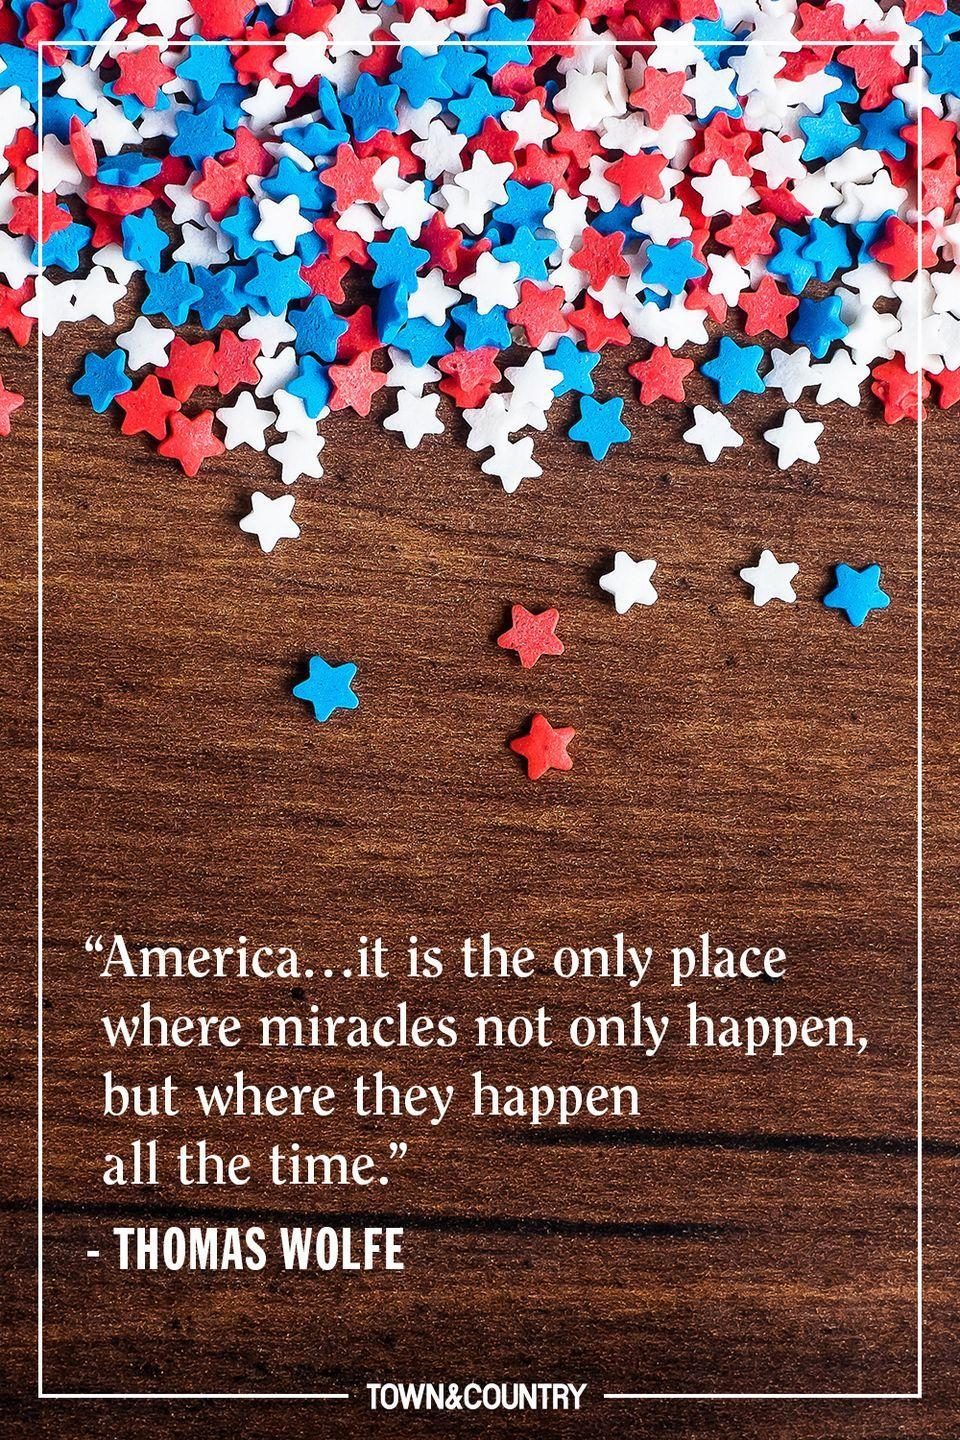 """<p>""""America…it is the only place where miracles not only happen, but where they happen all the time.""""</p><p><em>— Thomas Wolfe, Of Time and the River</em></p>"""